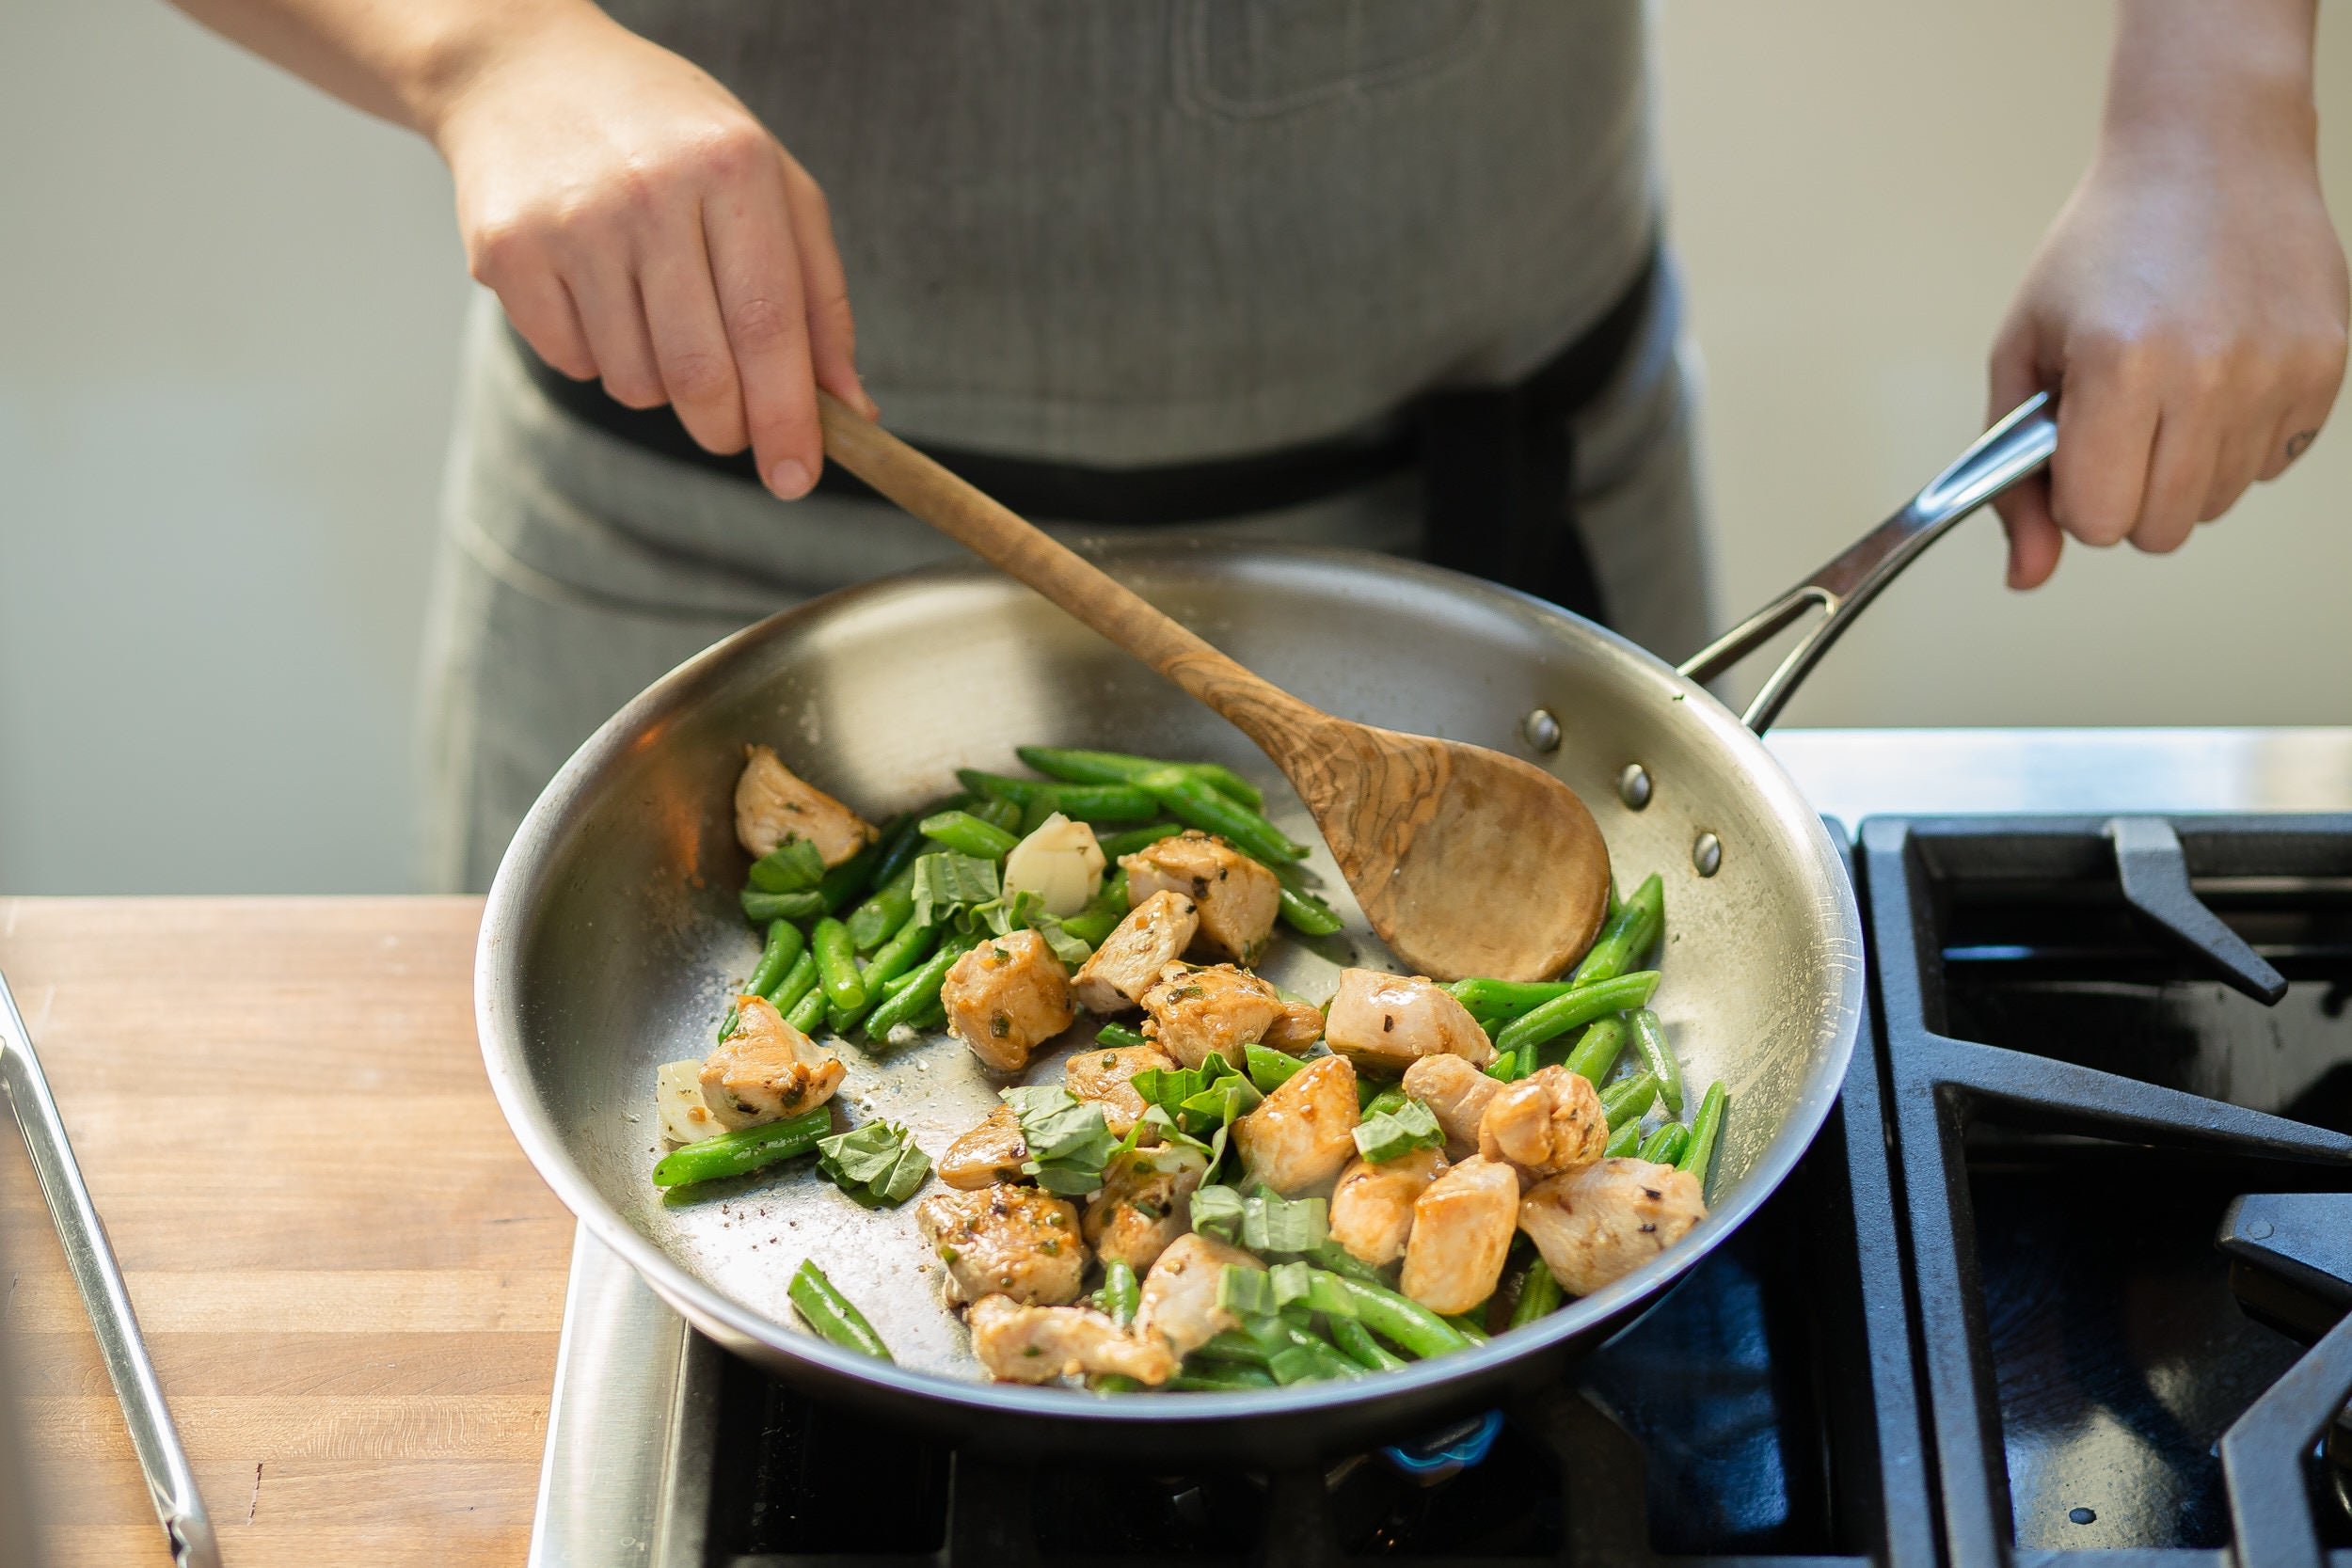 Basil Chili Chicken Stir-Fry